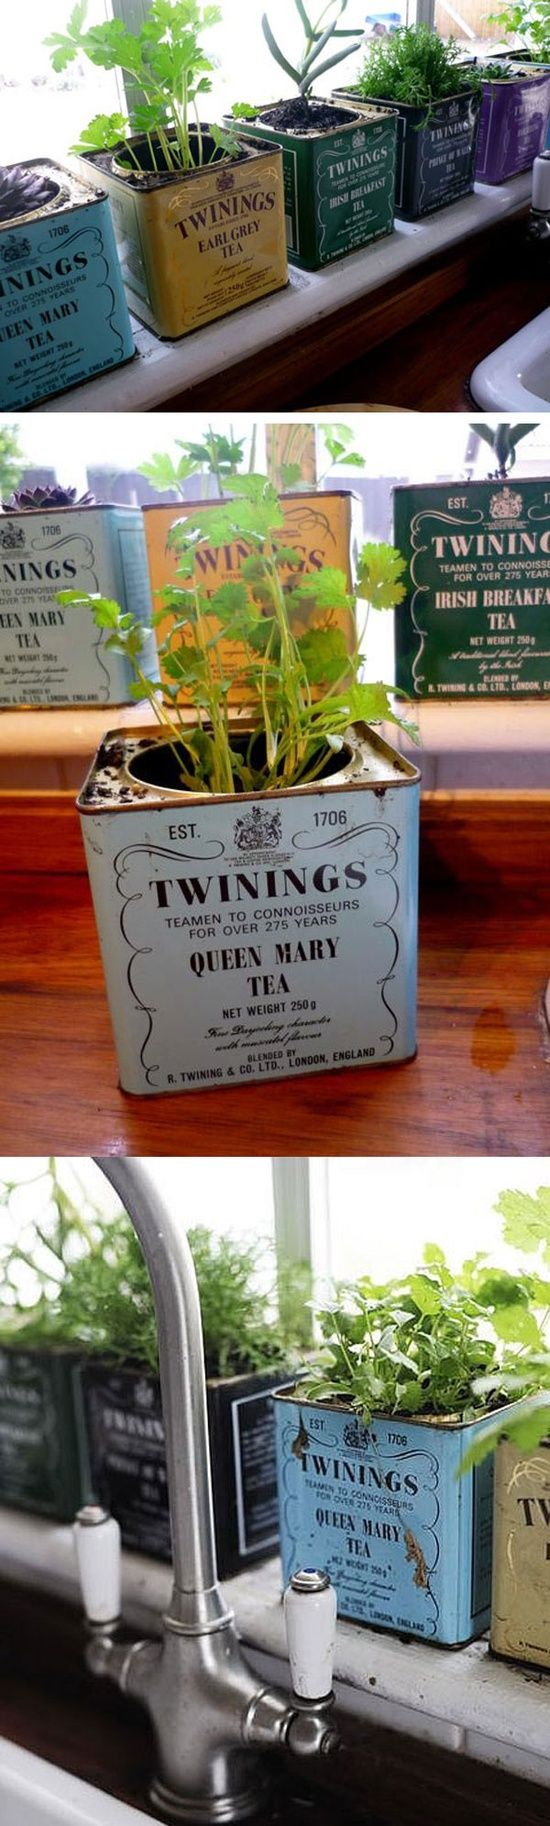 tea containers to plant herbs on the windowsill in the kitchen. @ Home Improvement Ideas